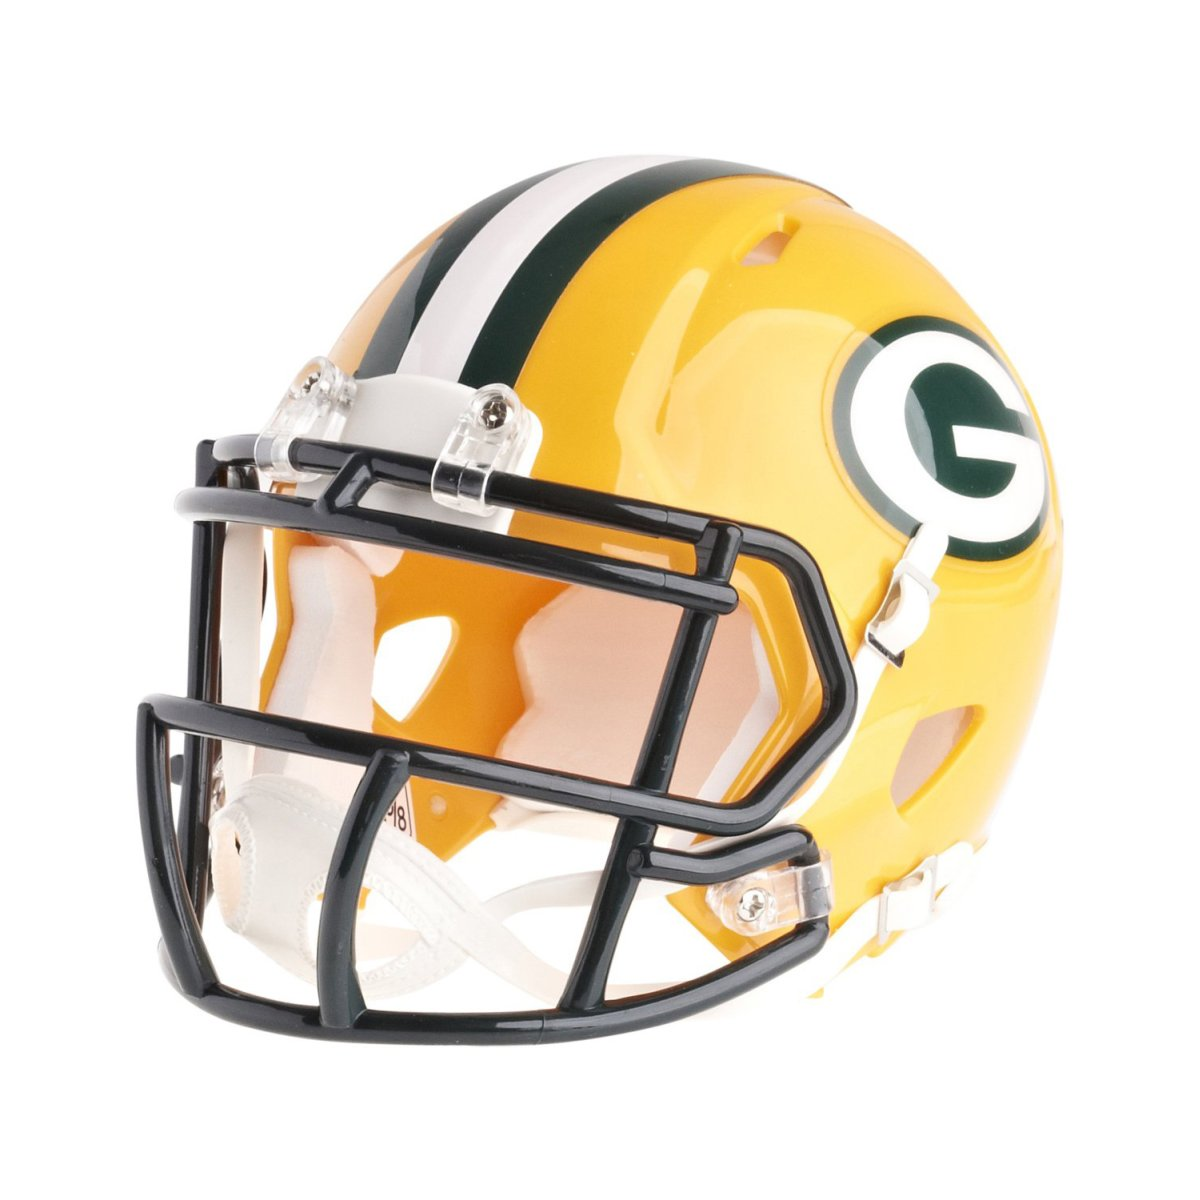 5fd0180b2d3 Riddell Mini Football Helmet Nfl Speed Green Bay Packers Ebay